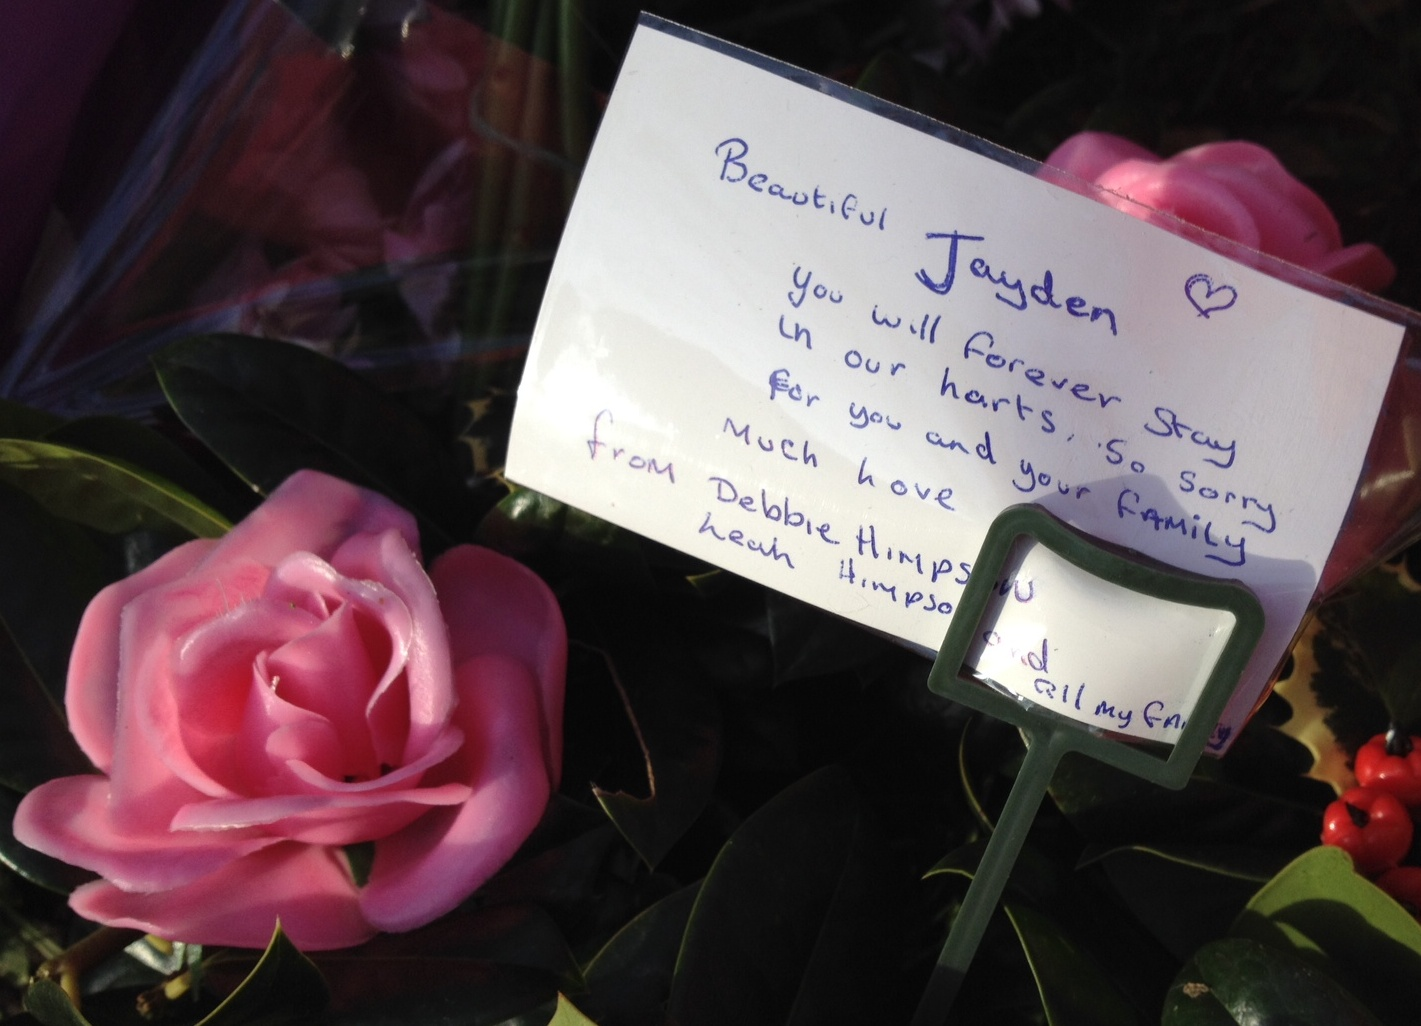 Tributes to Jayden Parkinson